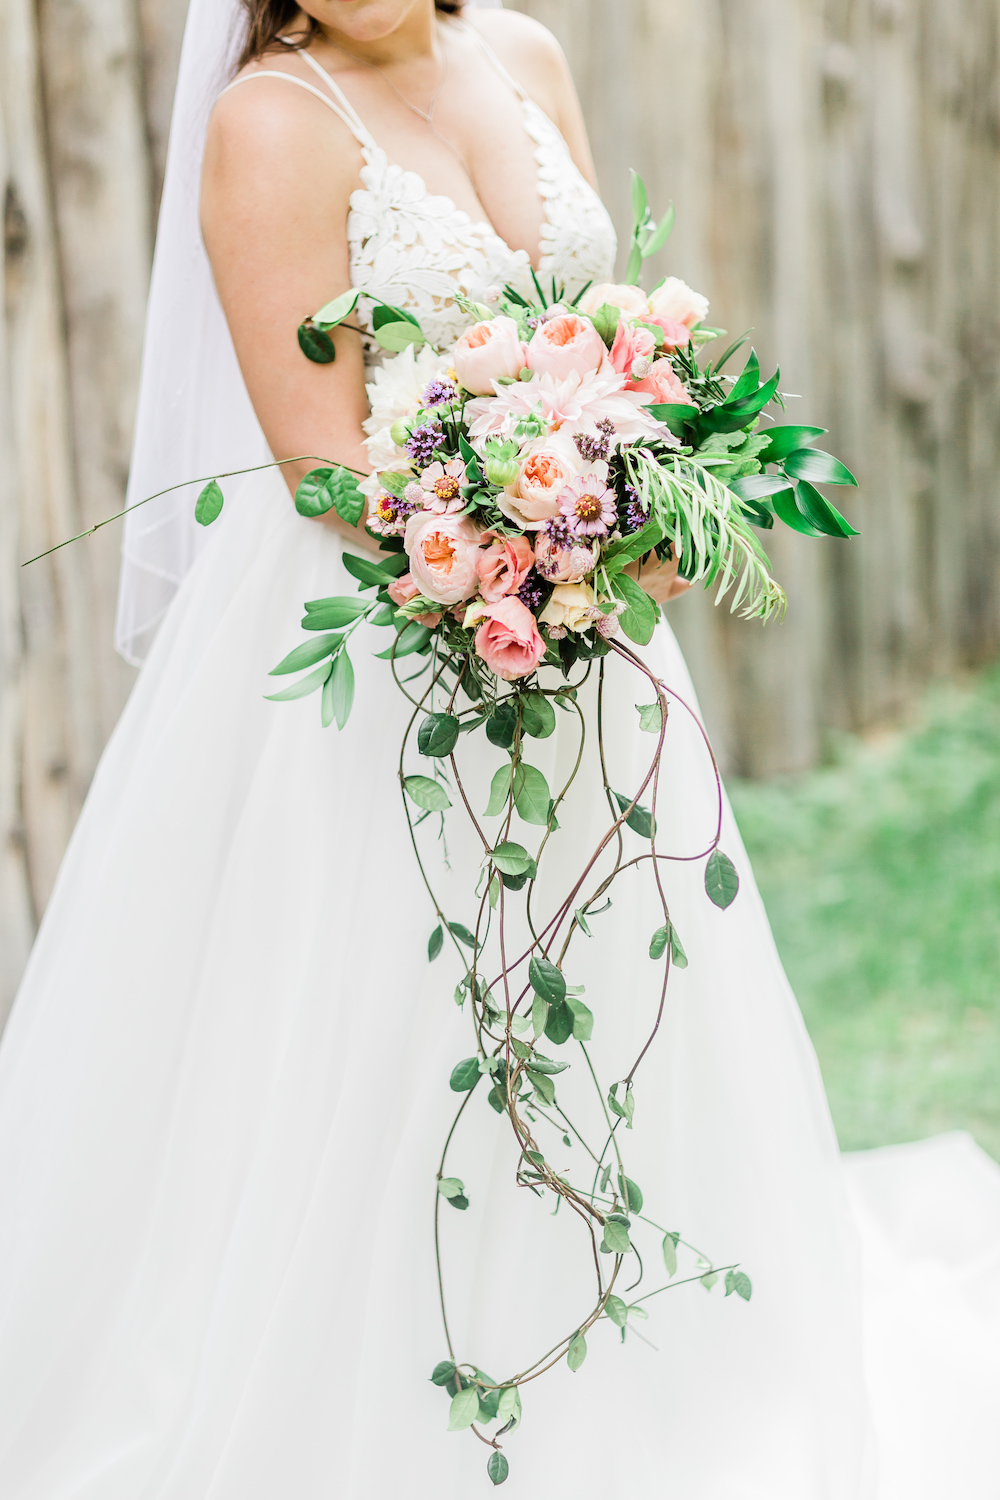 Organic Style Cascading Bouquet - Tips to Take Care of your Wedding Flowers